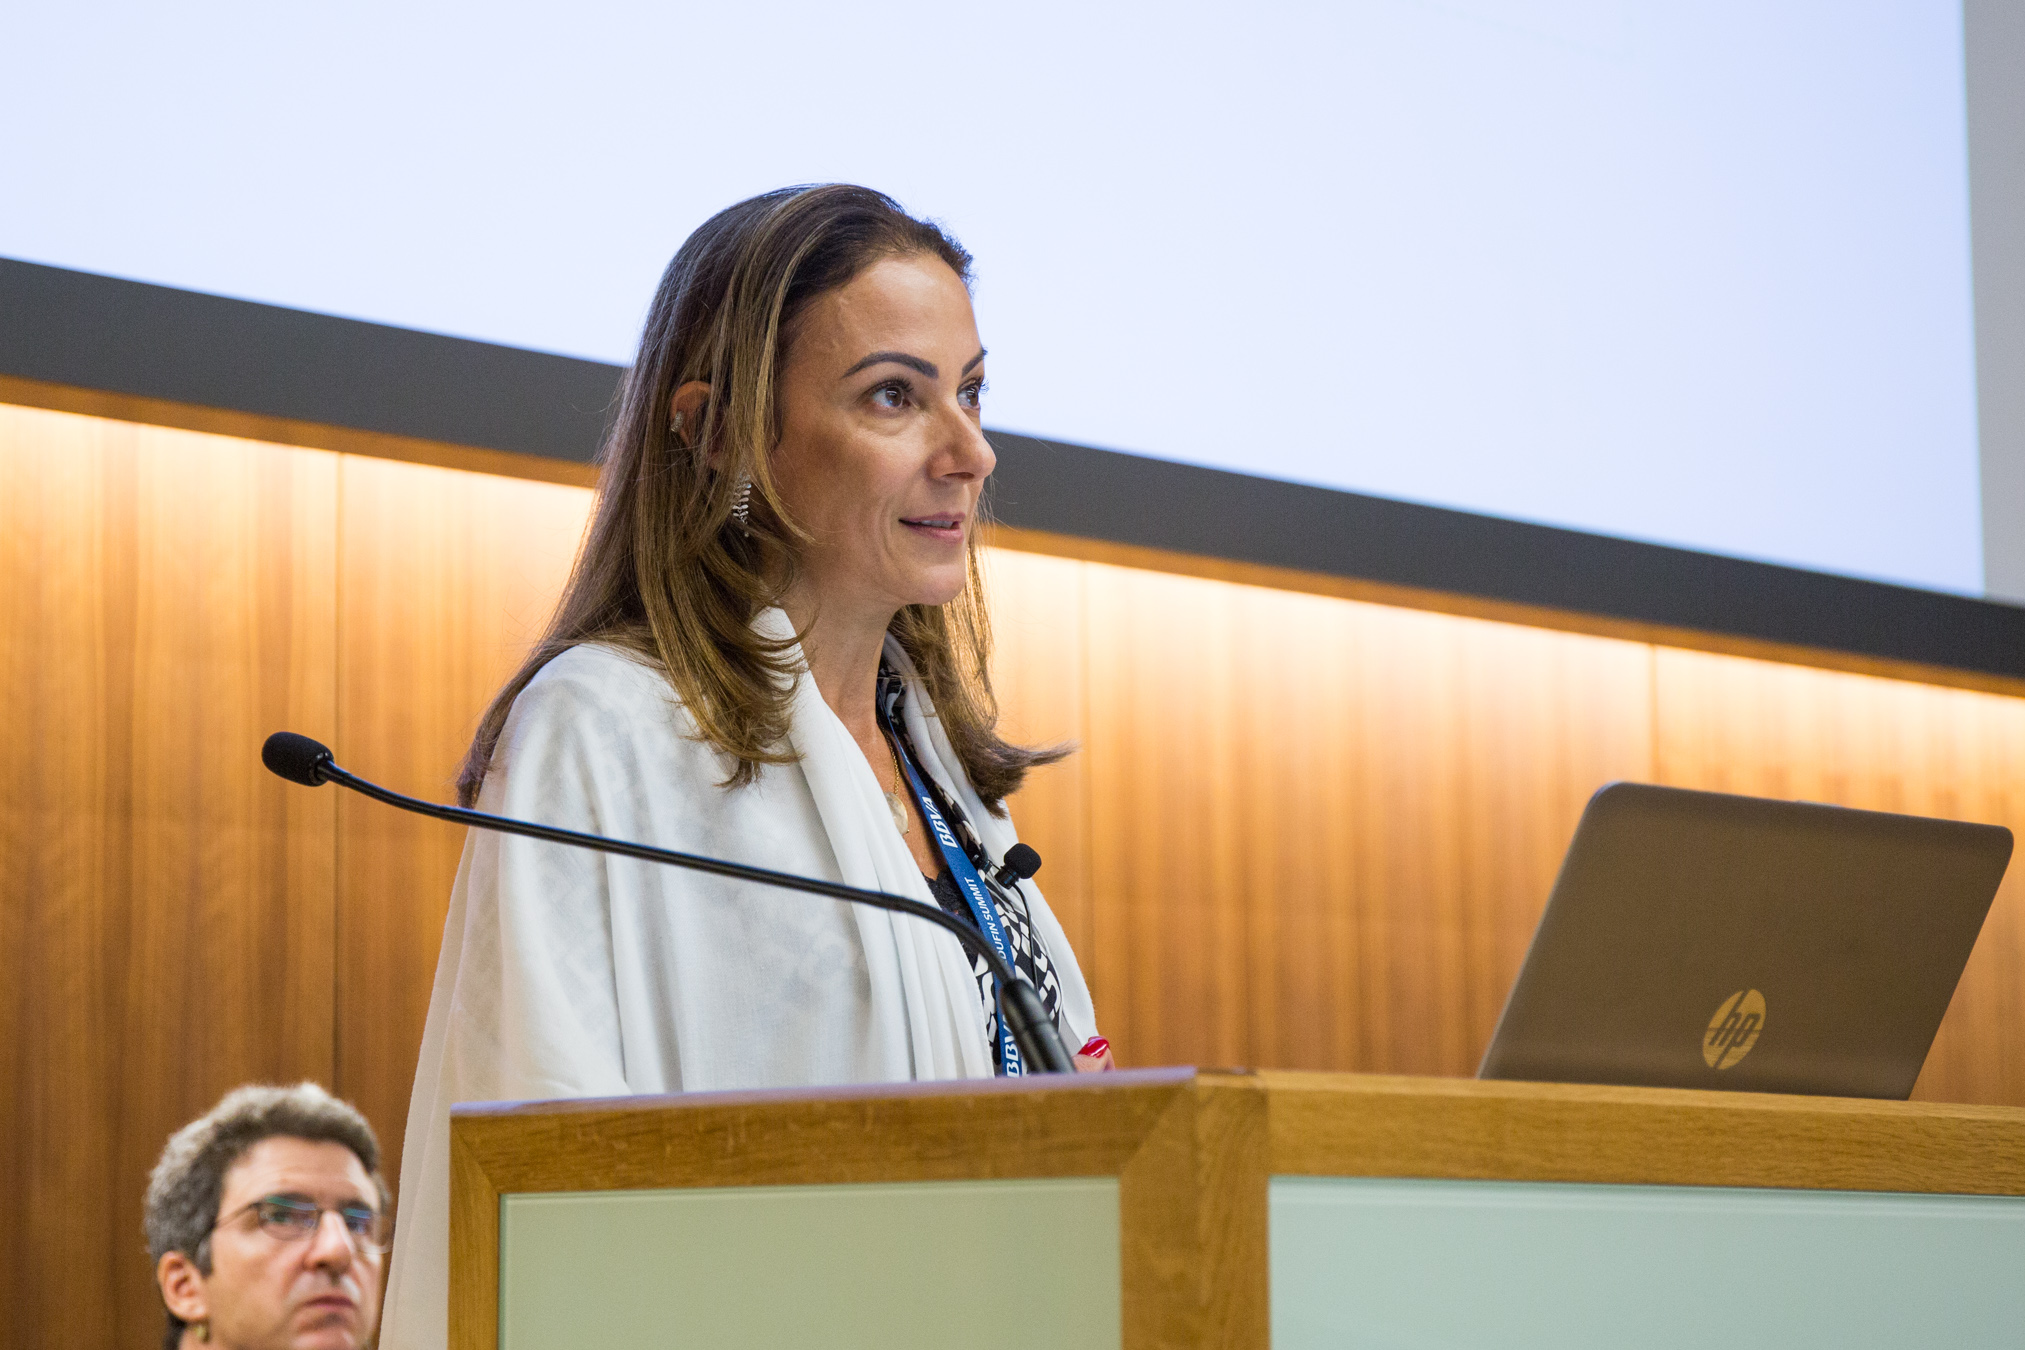 Ana Leoni, Superintendent of Education at ANBIMA - Brazilian Association of Financial and Capital Market Entities